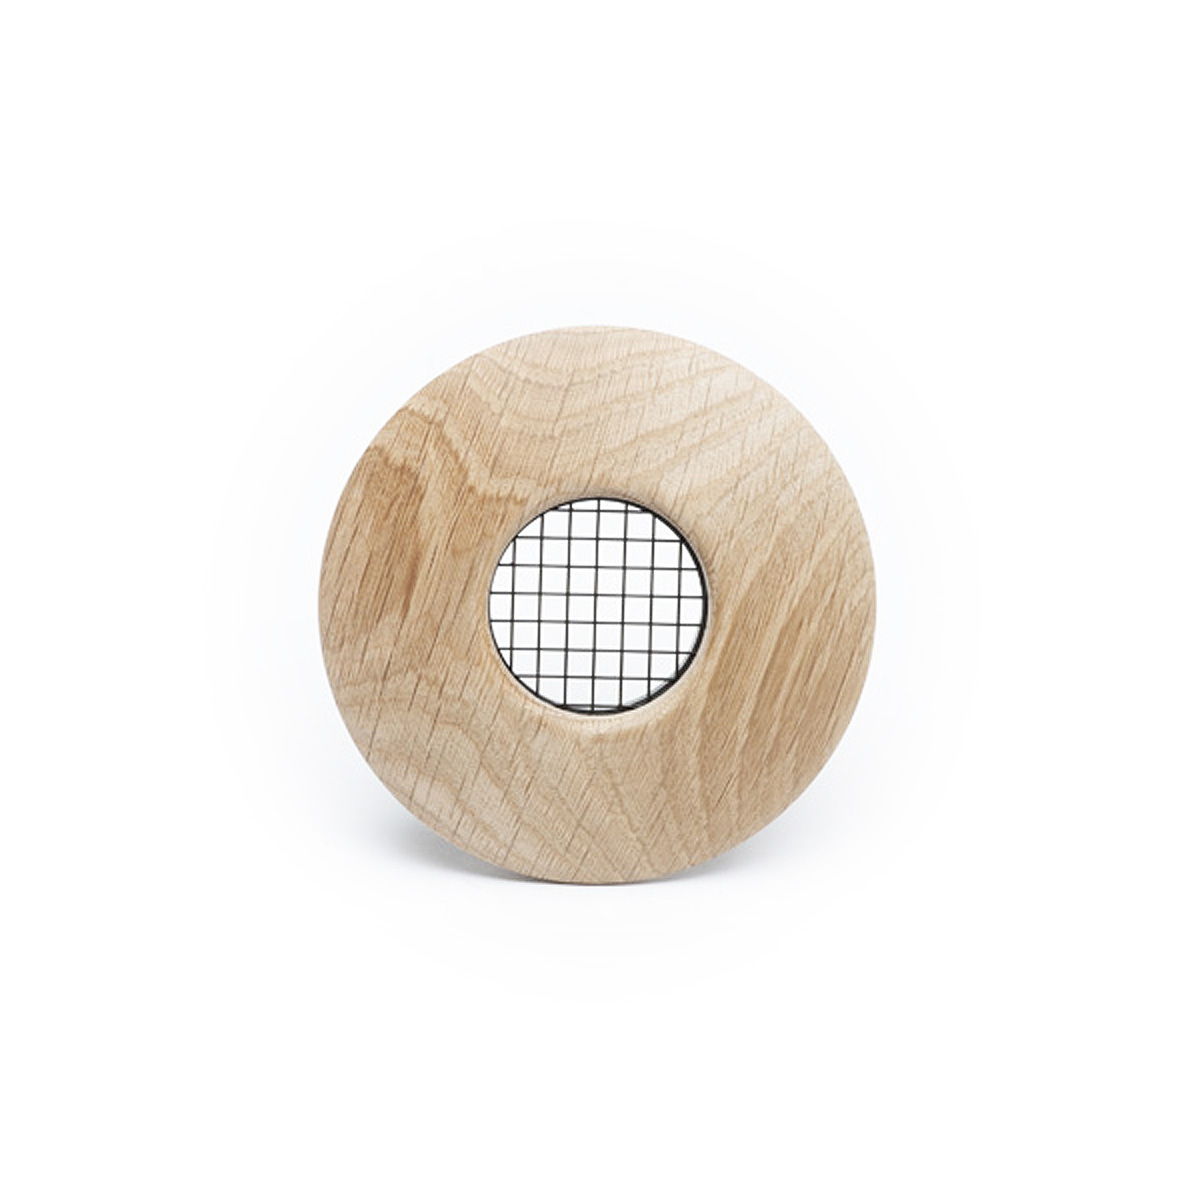 "Round Supply Outlet, 2"", White Oak wood, TFS, 1/bx"